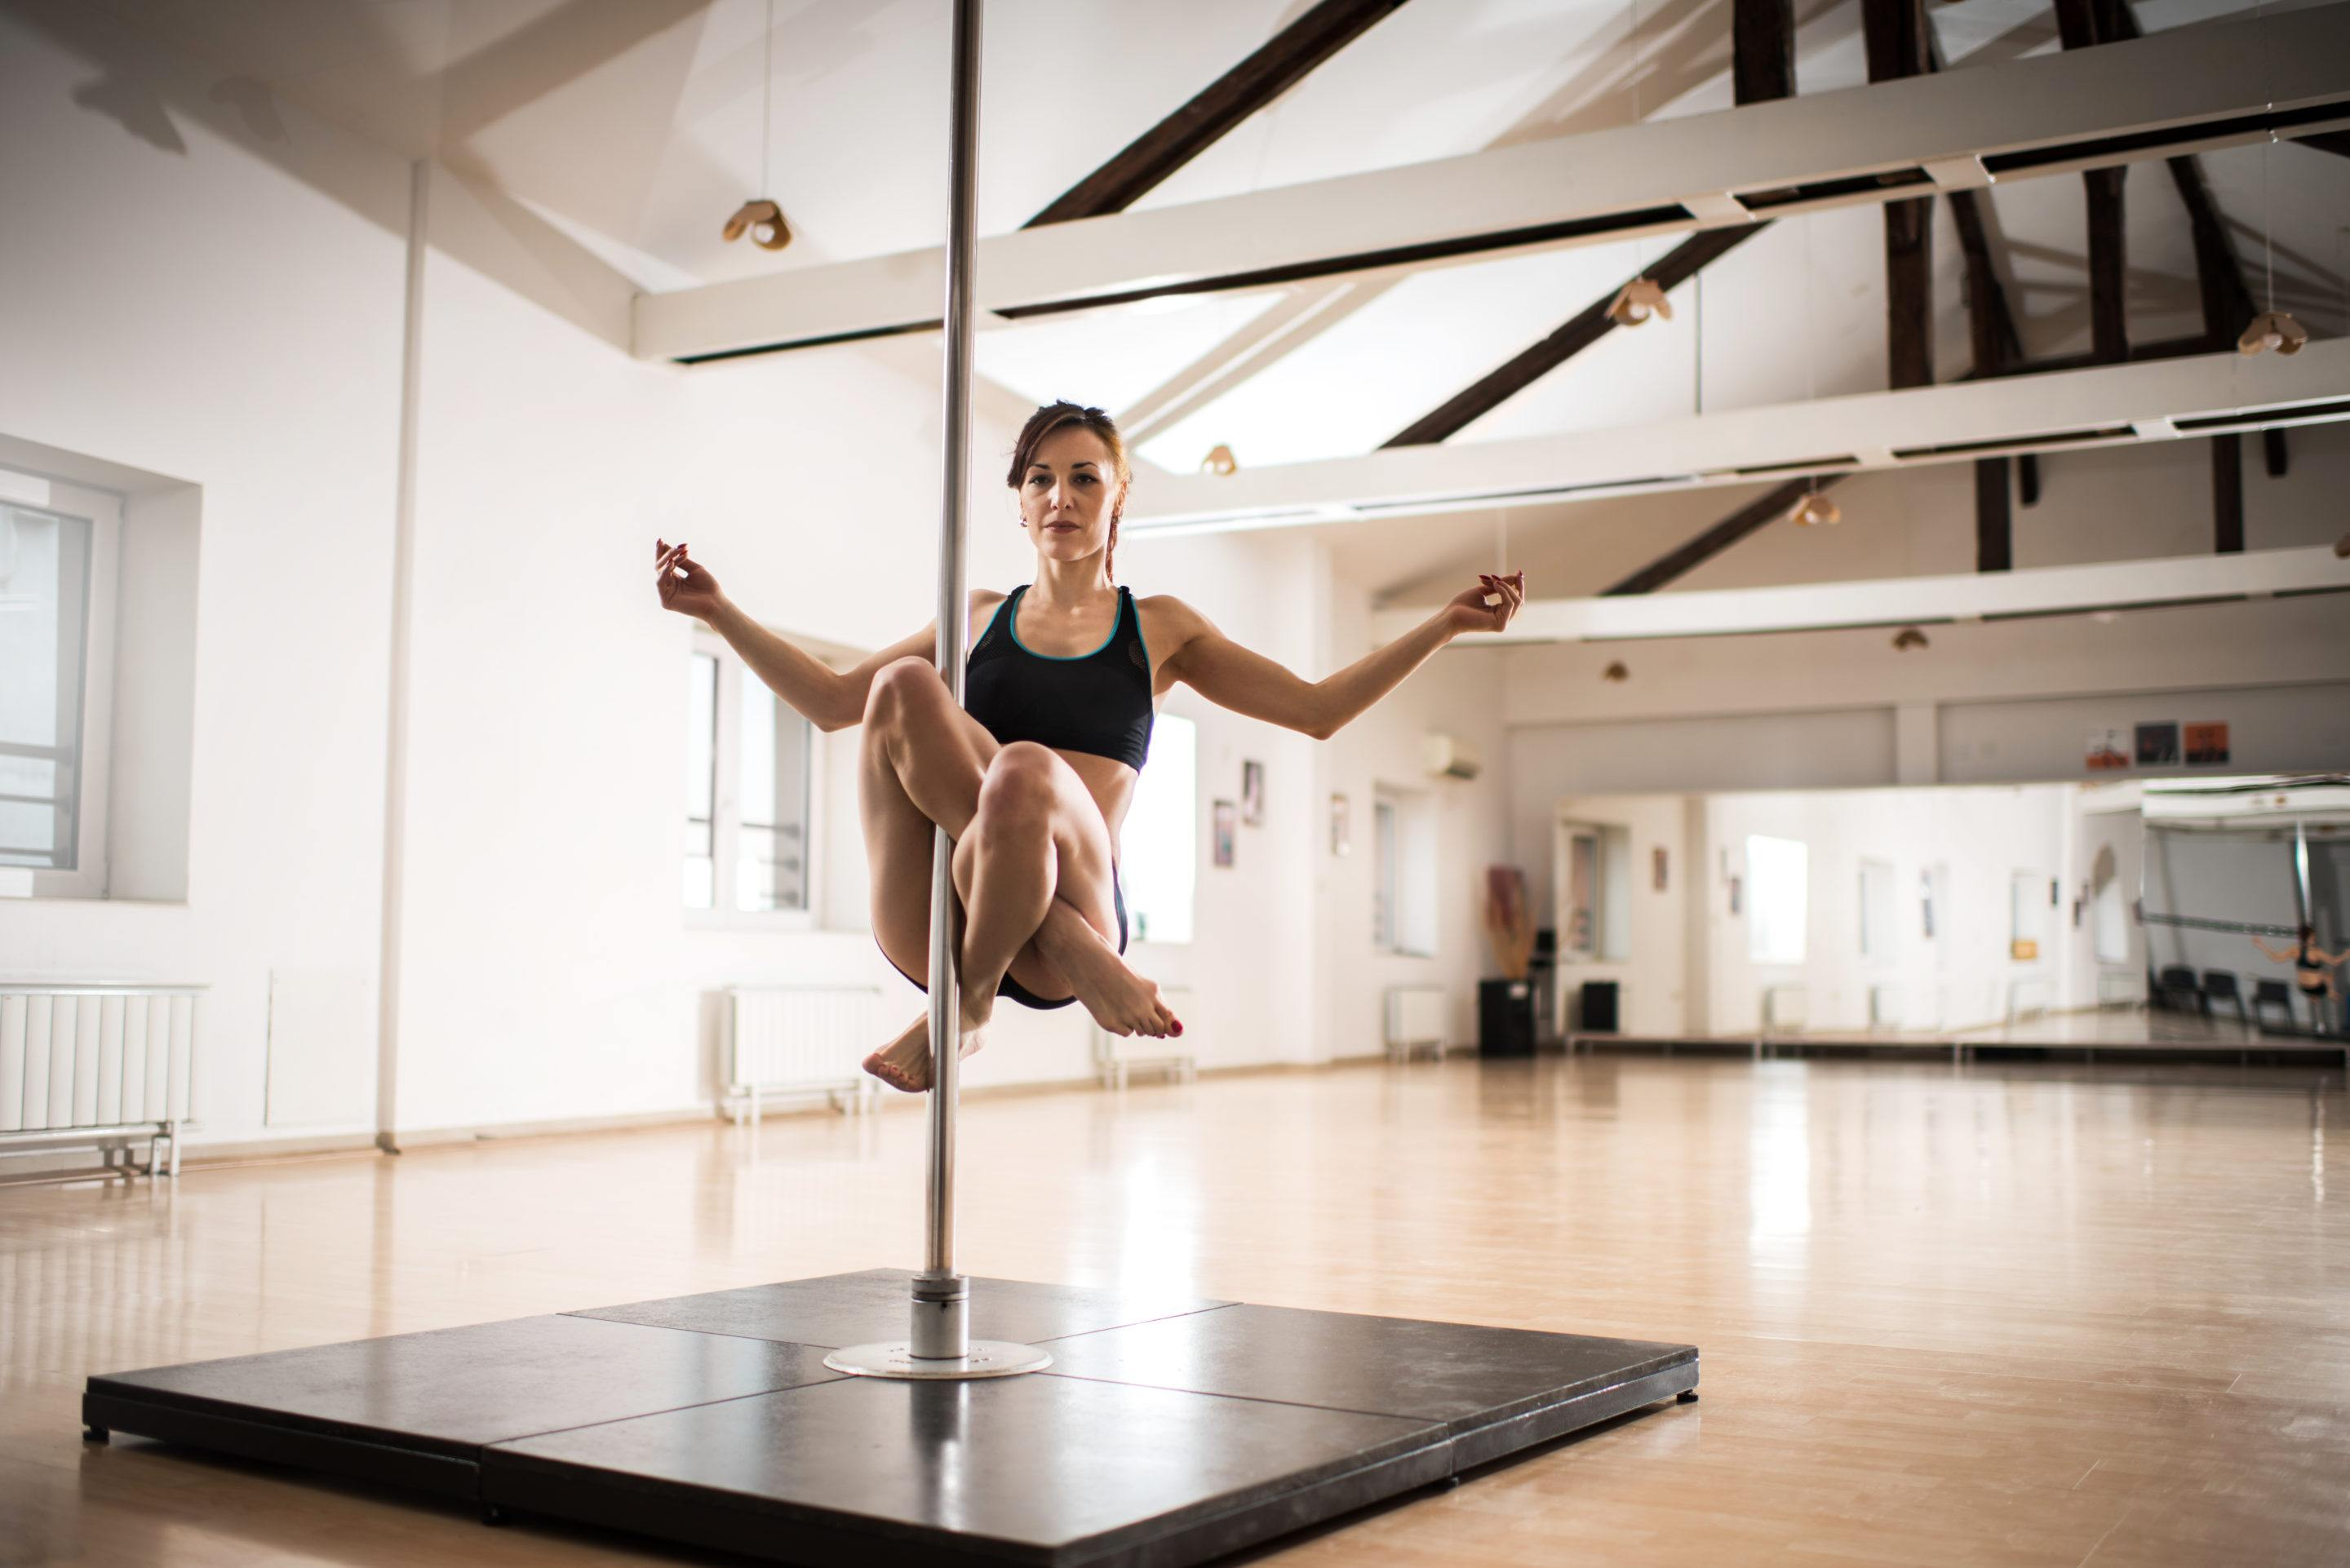 Where to find pole dancing classes near me in Houston ...